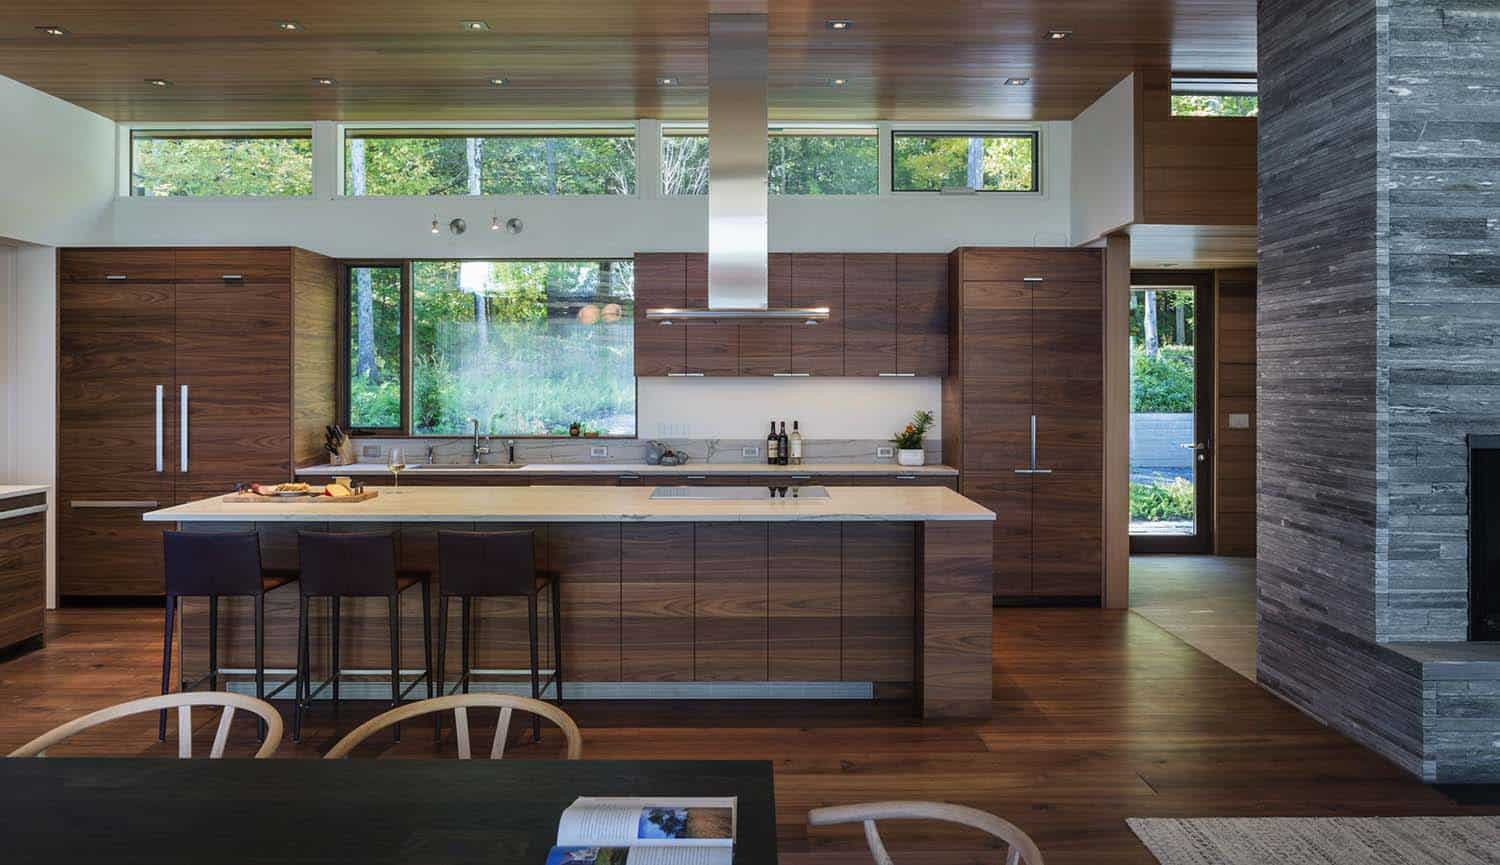 Modern Family Home-Mathison Mathison Architects-05-1 Kindesign